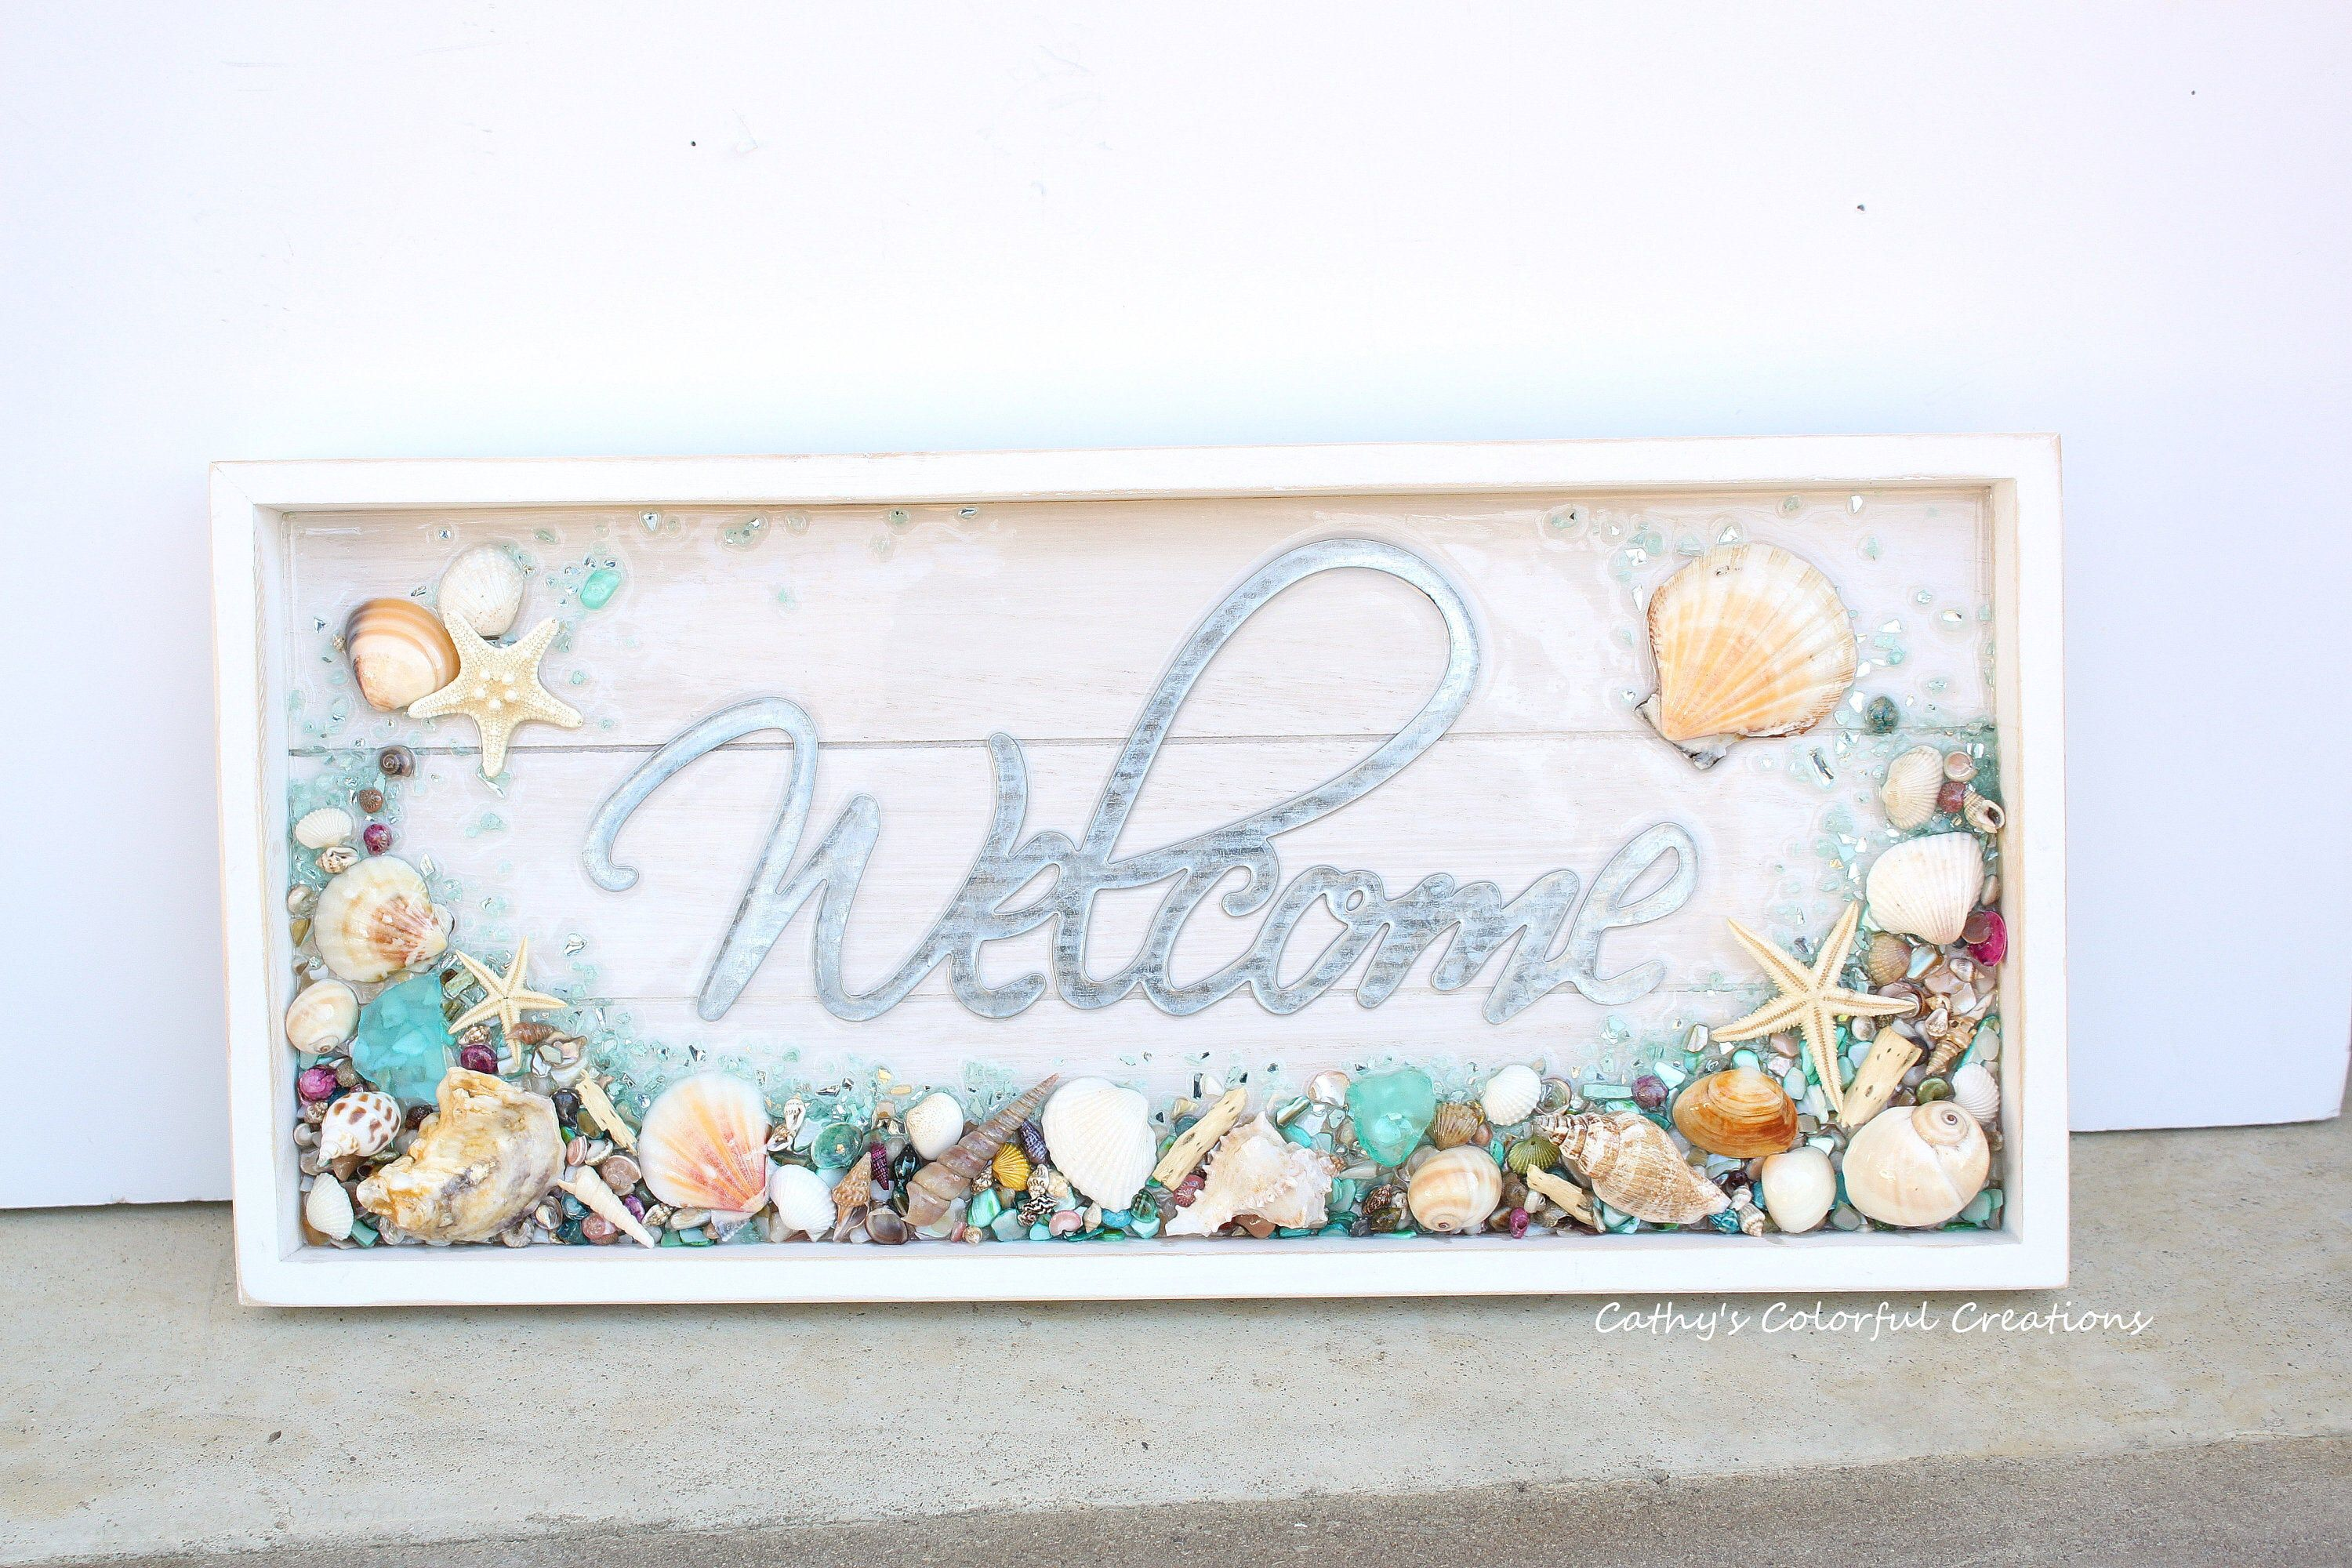 Welcome Sign Beach Welcome Sign Coastal Welcome Sign Beach Decor Coastal Decor Beach Wall Decor Shell Art Beach Art Ocean Wave In 2020 Welcome Sign Beach Glass Art Beach Wall Decor